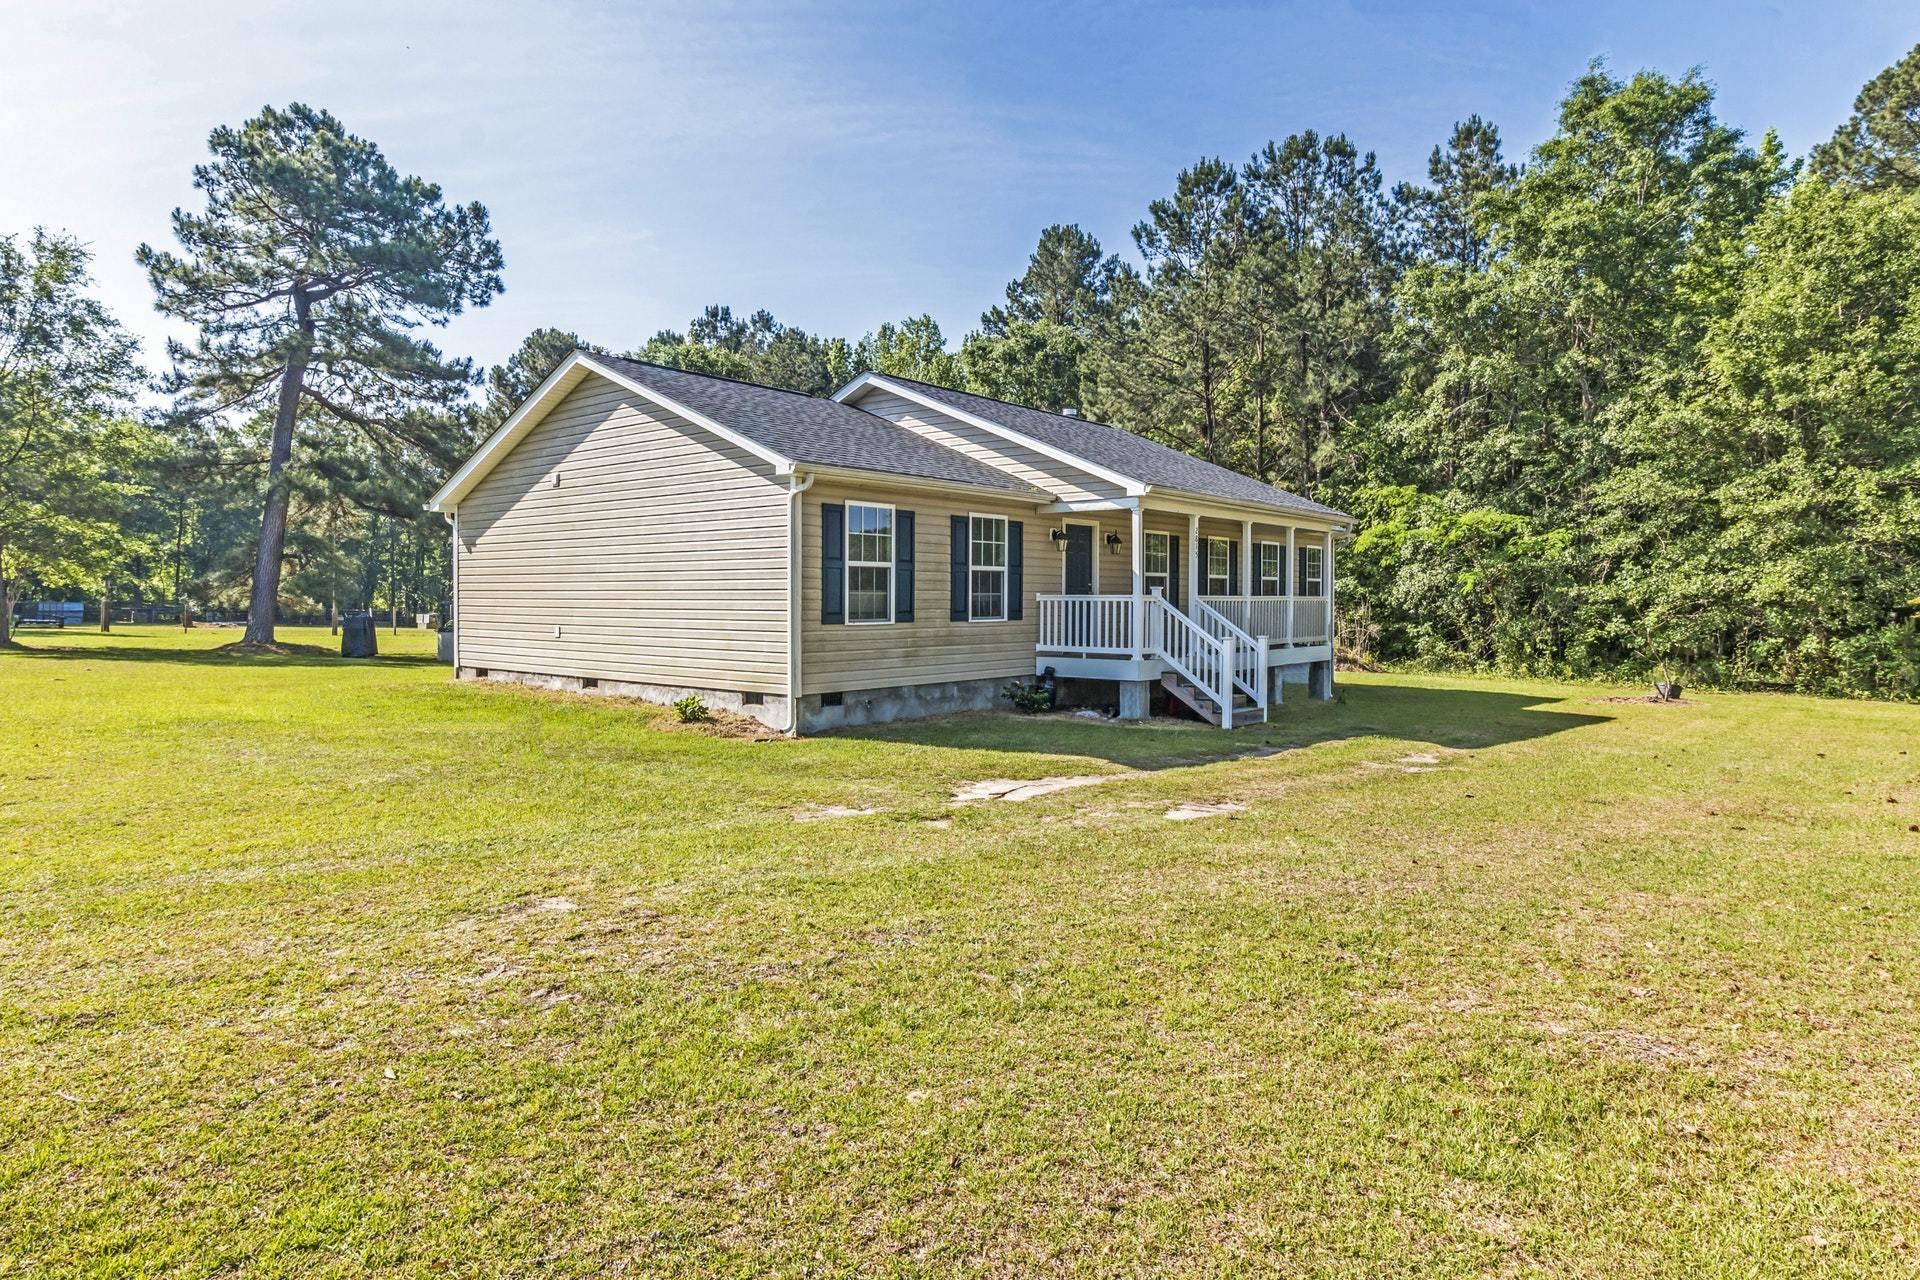 Photo of 2815 State Rd S-14-401, Alcolu, SC 29001